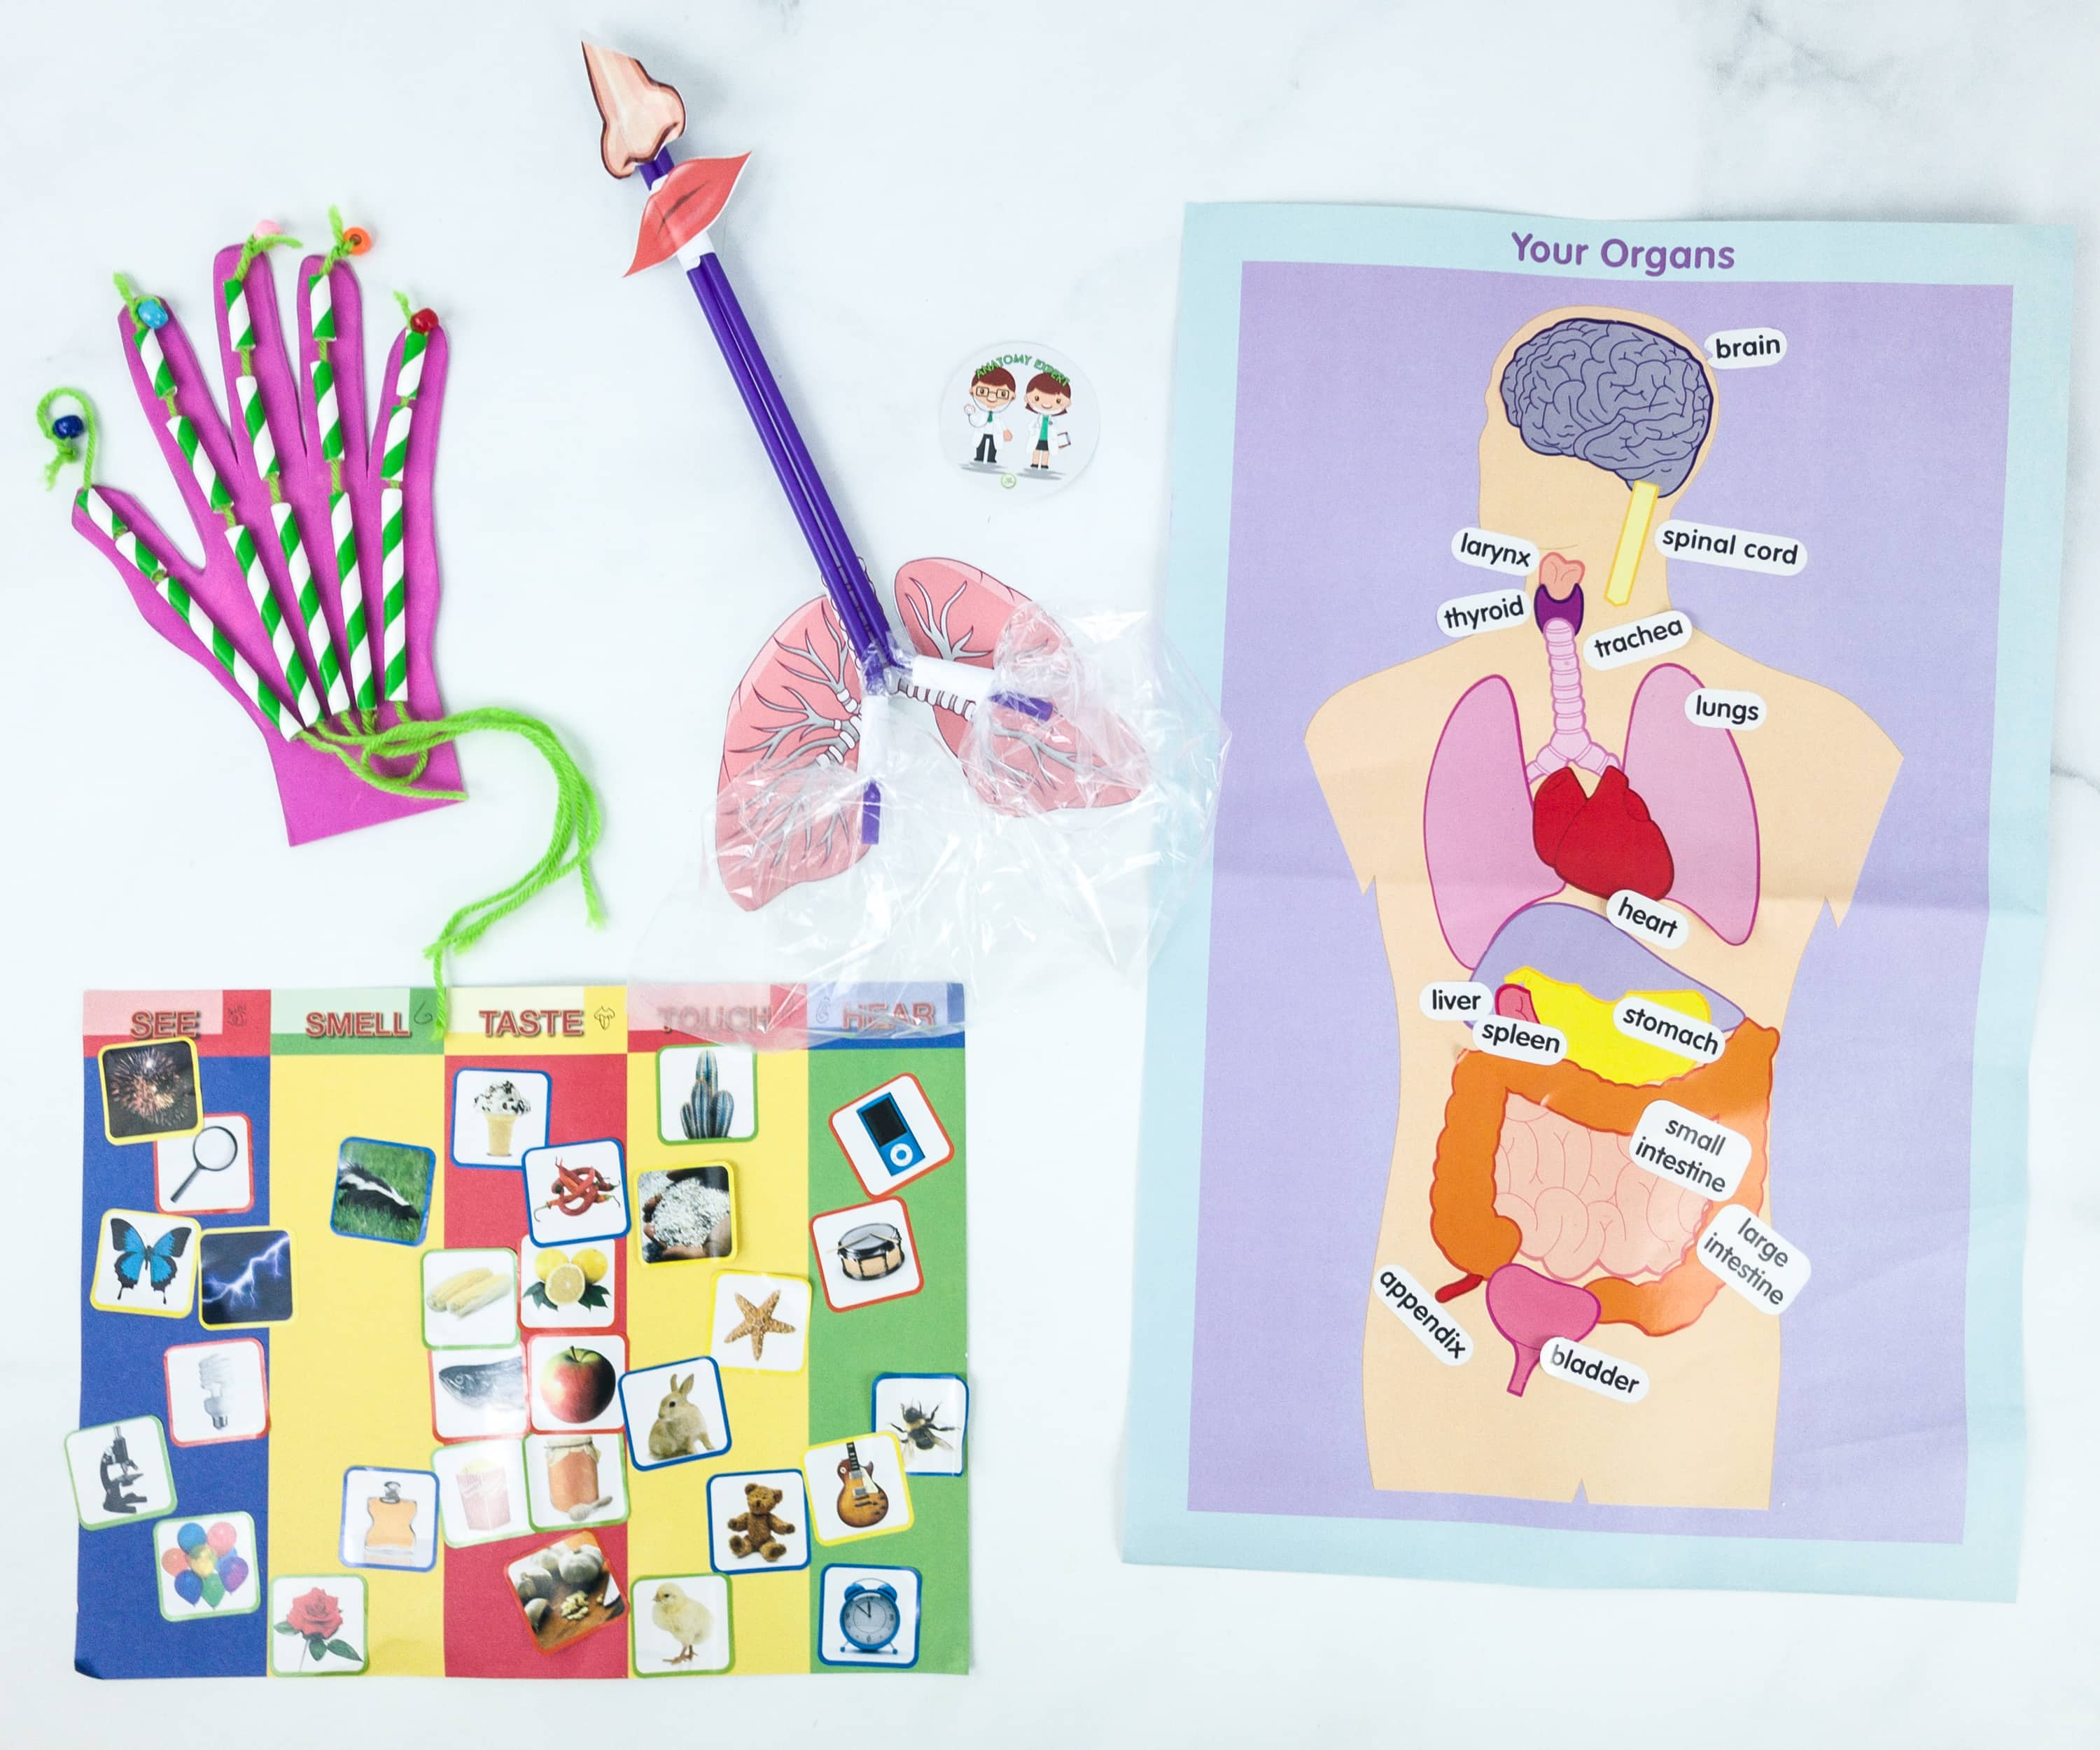 Green Kid Crafts The Human Body Subscription Box Review 50 Off Coupon Hello Subscription